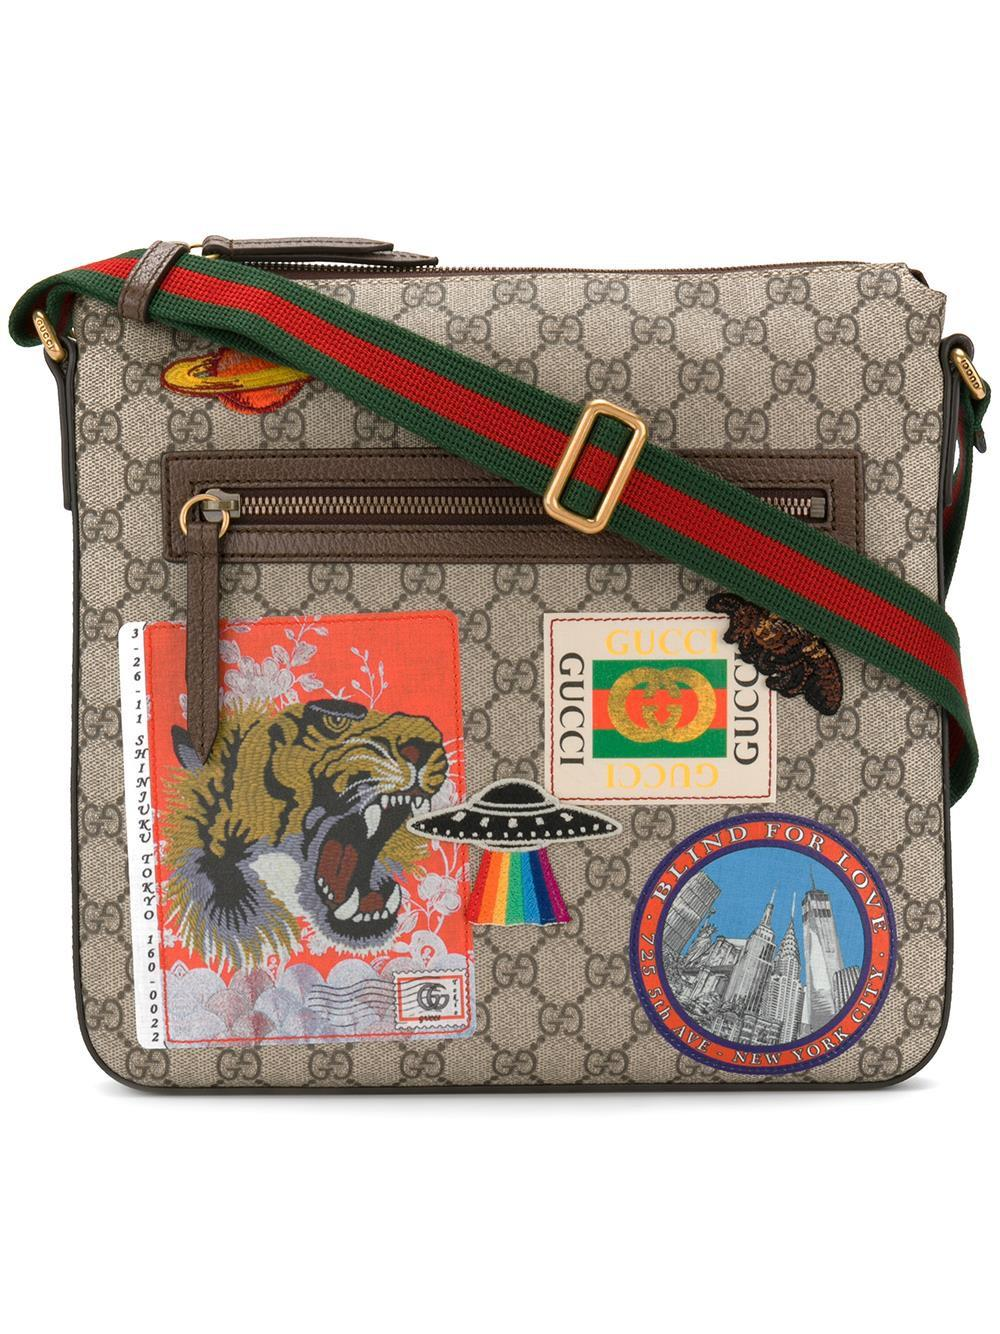 351628359d31 Gucci Courrier Soft Gg Supreme Crossbody Bag for Men - Lyst